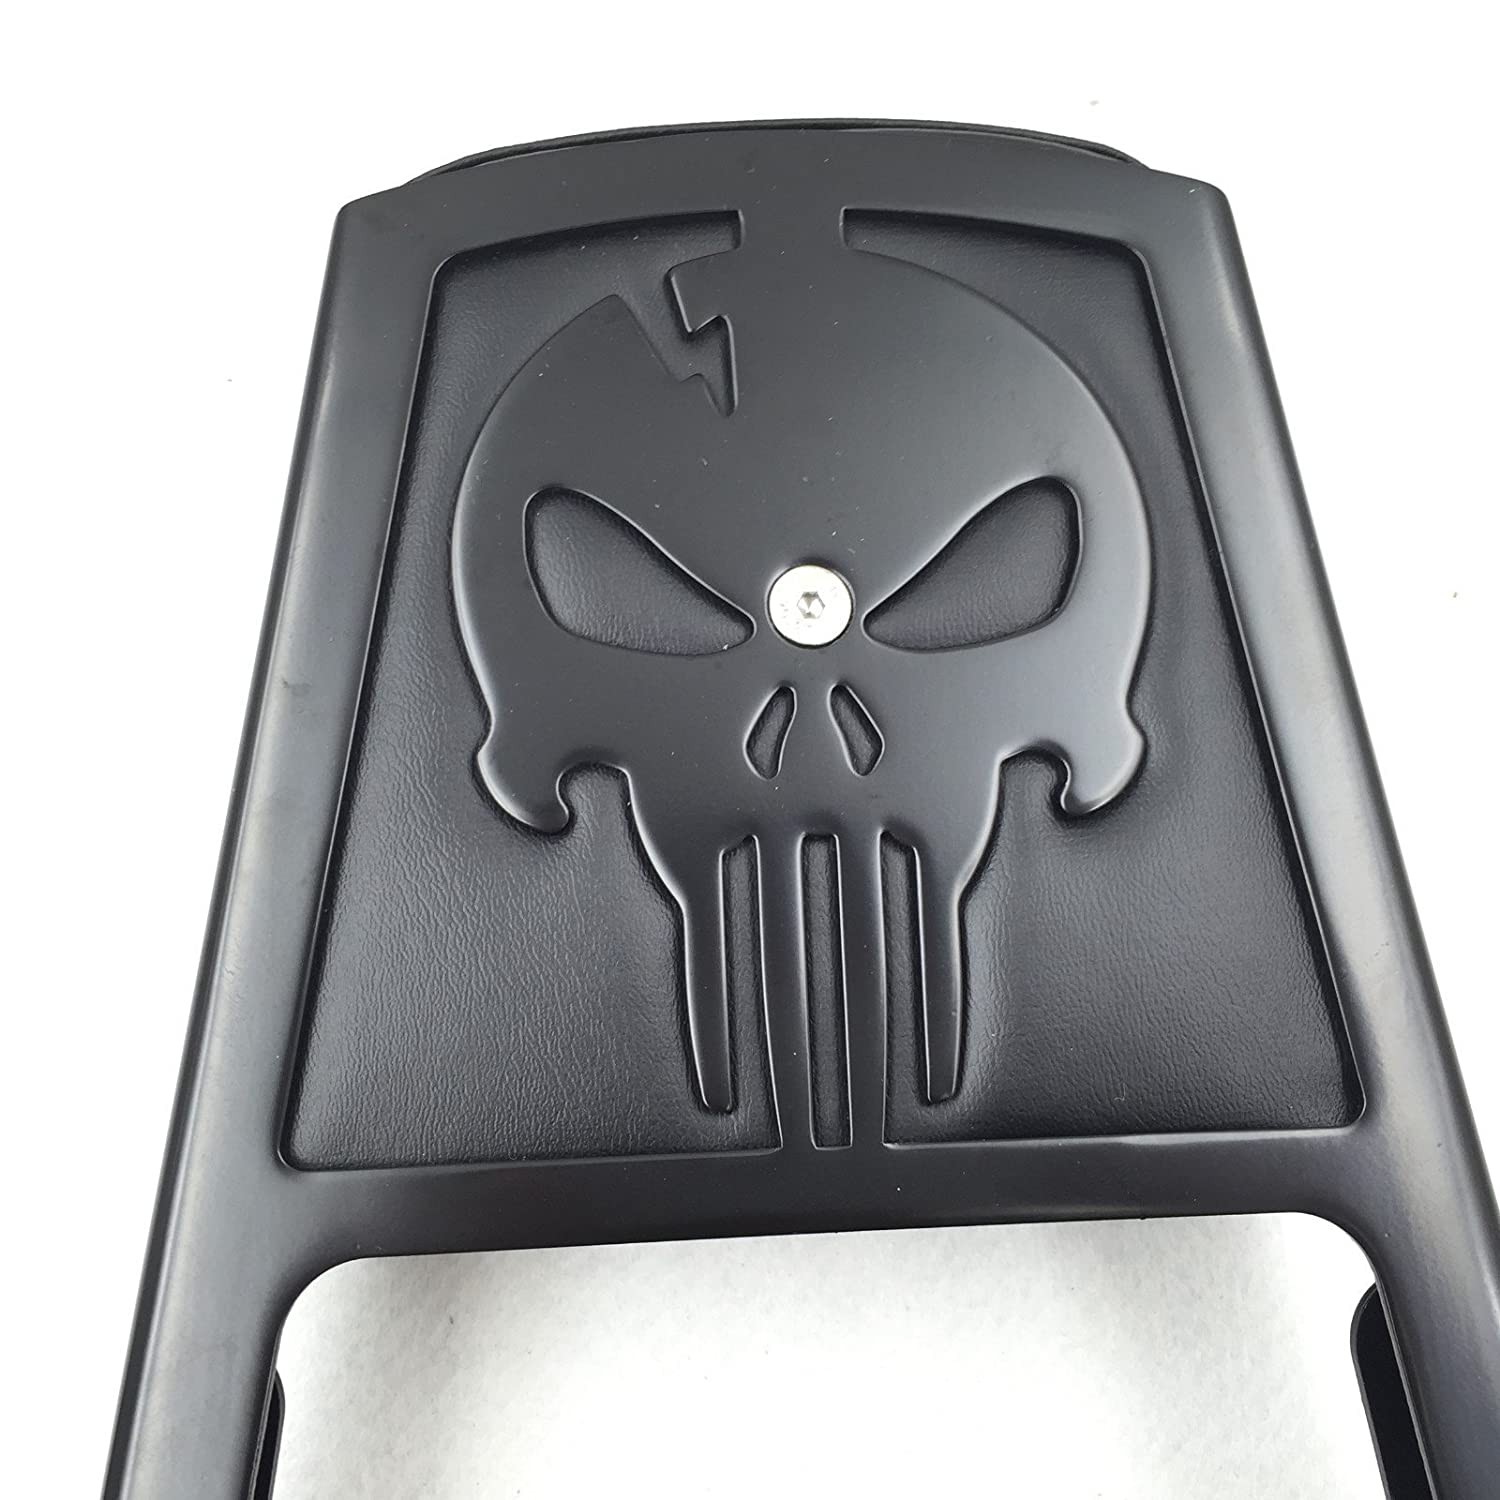 HTT Group Motorcycle Black Skull Style Backrest Sissy Bar with Leather Pad For Harley Davidson Sportster Xl883C XL883R XL1200R XL1200C XL1200S XLH883 XLH1200 by TTMT